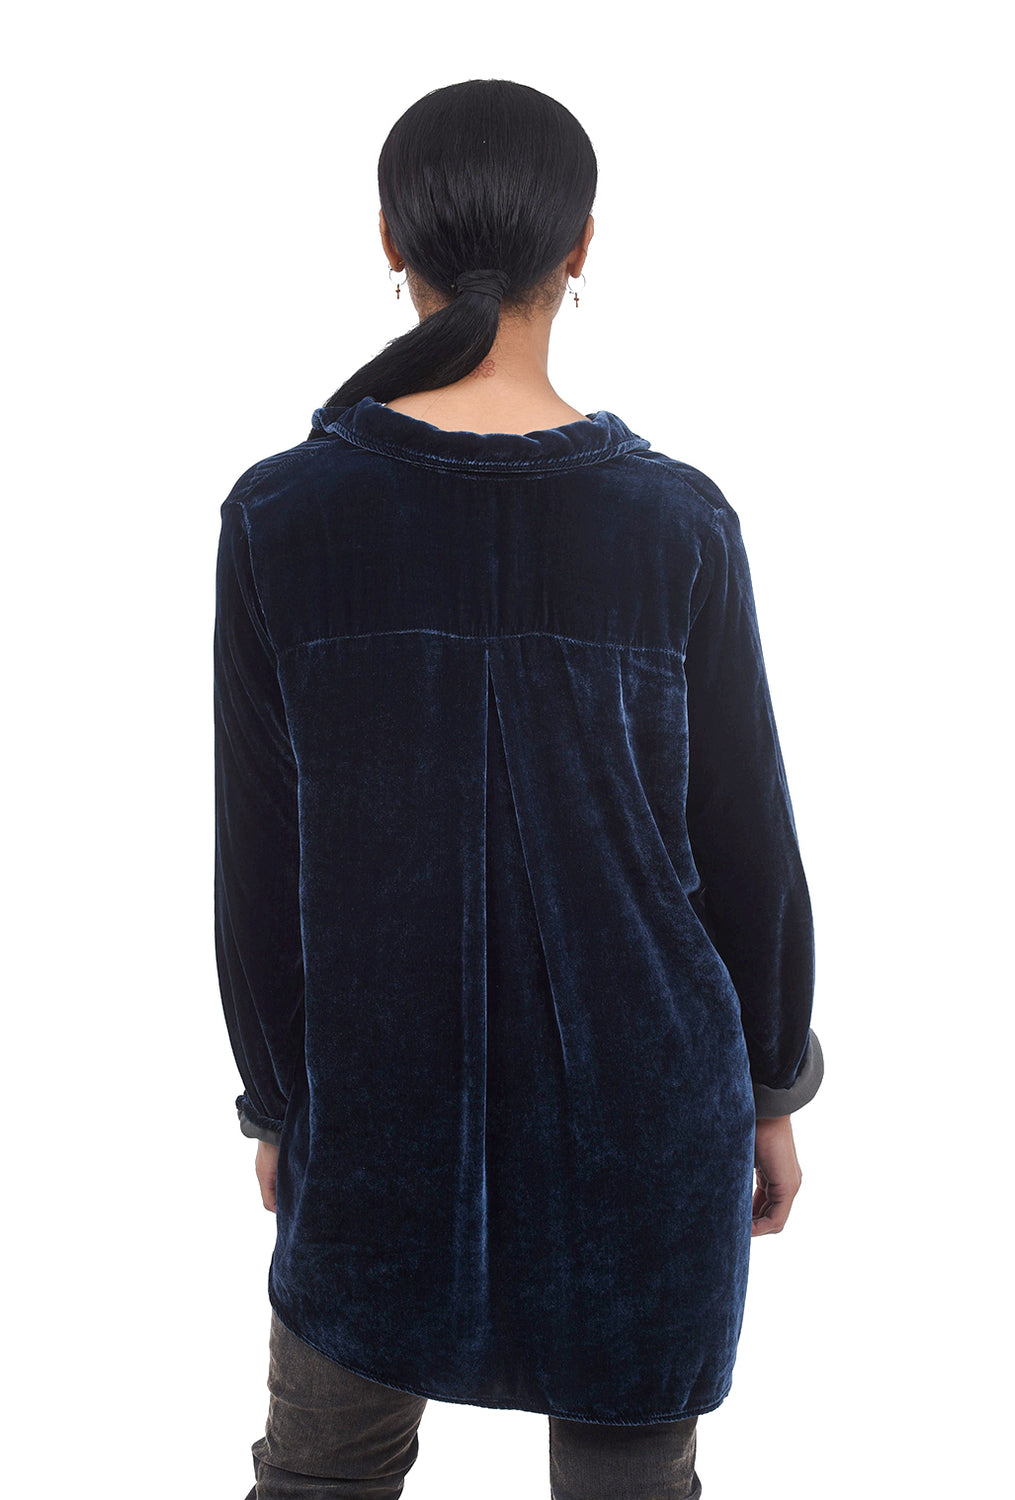 Cut Loose Velvet High-Low Shirt, Blueprint